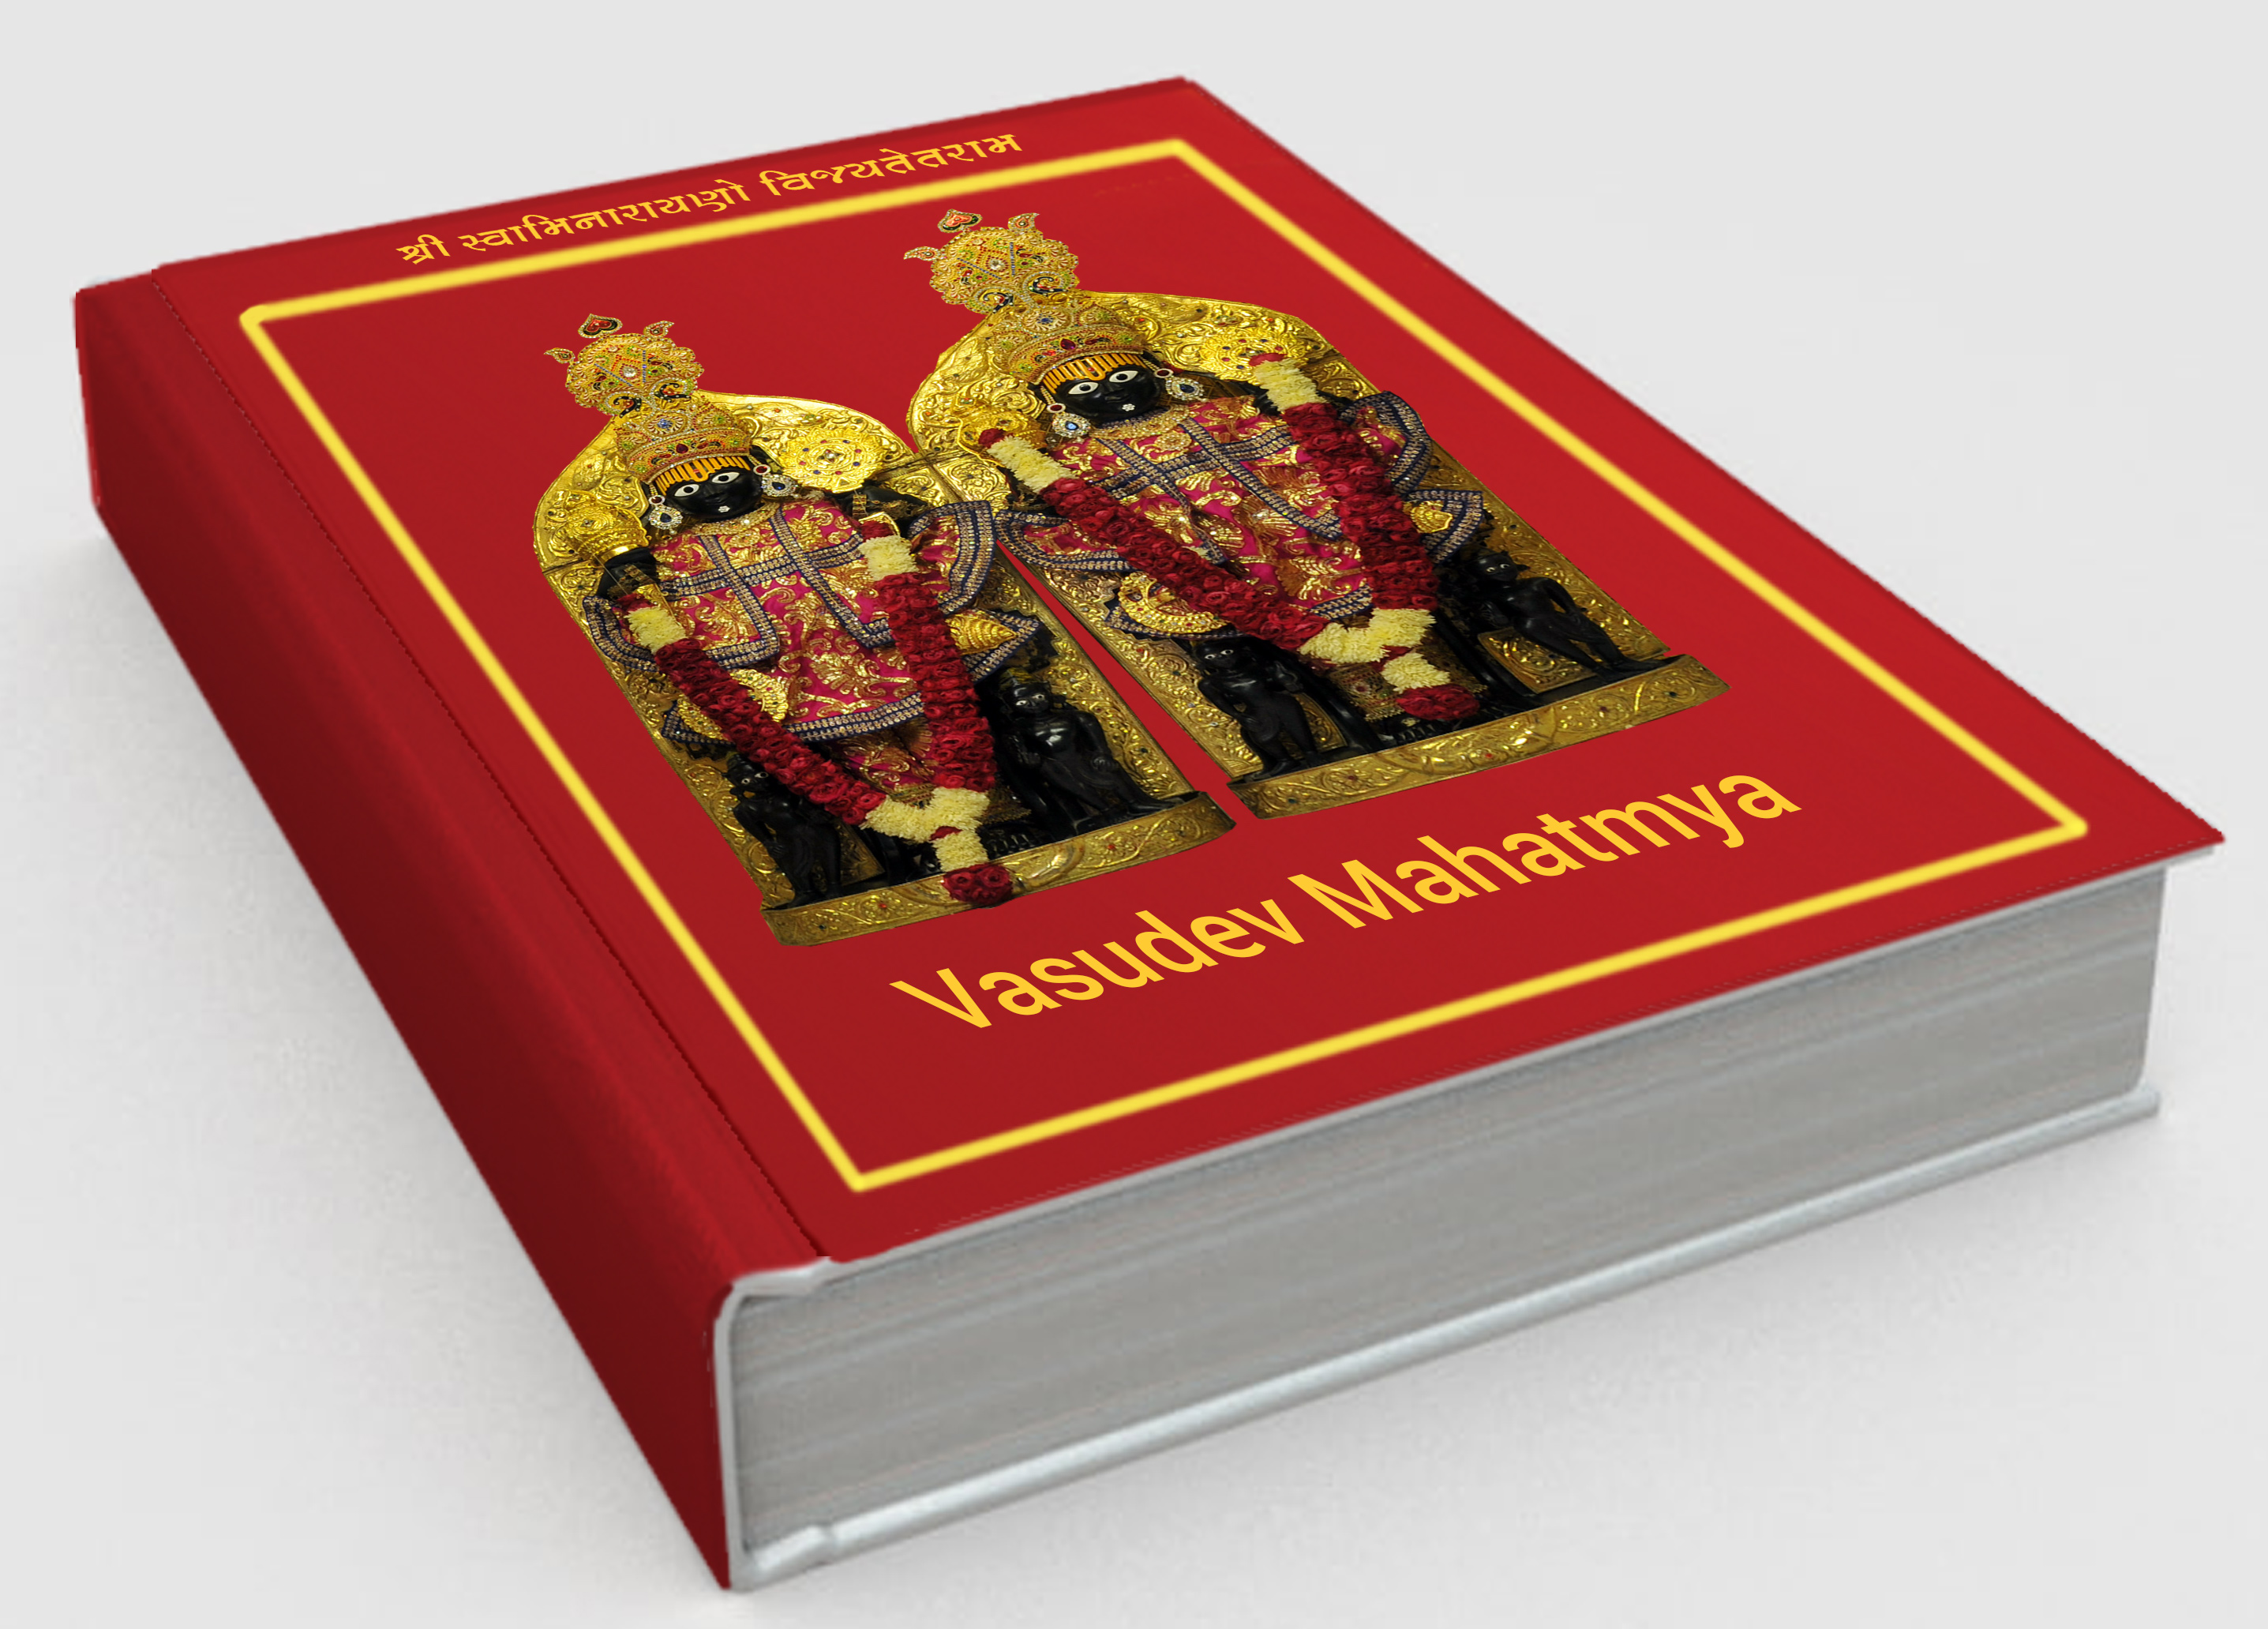 Cover of Vasudev Mahatmya